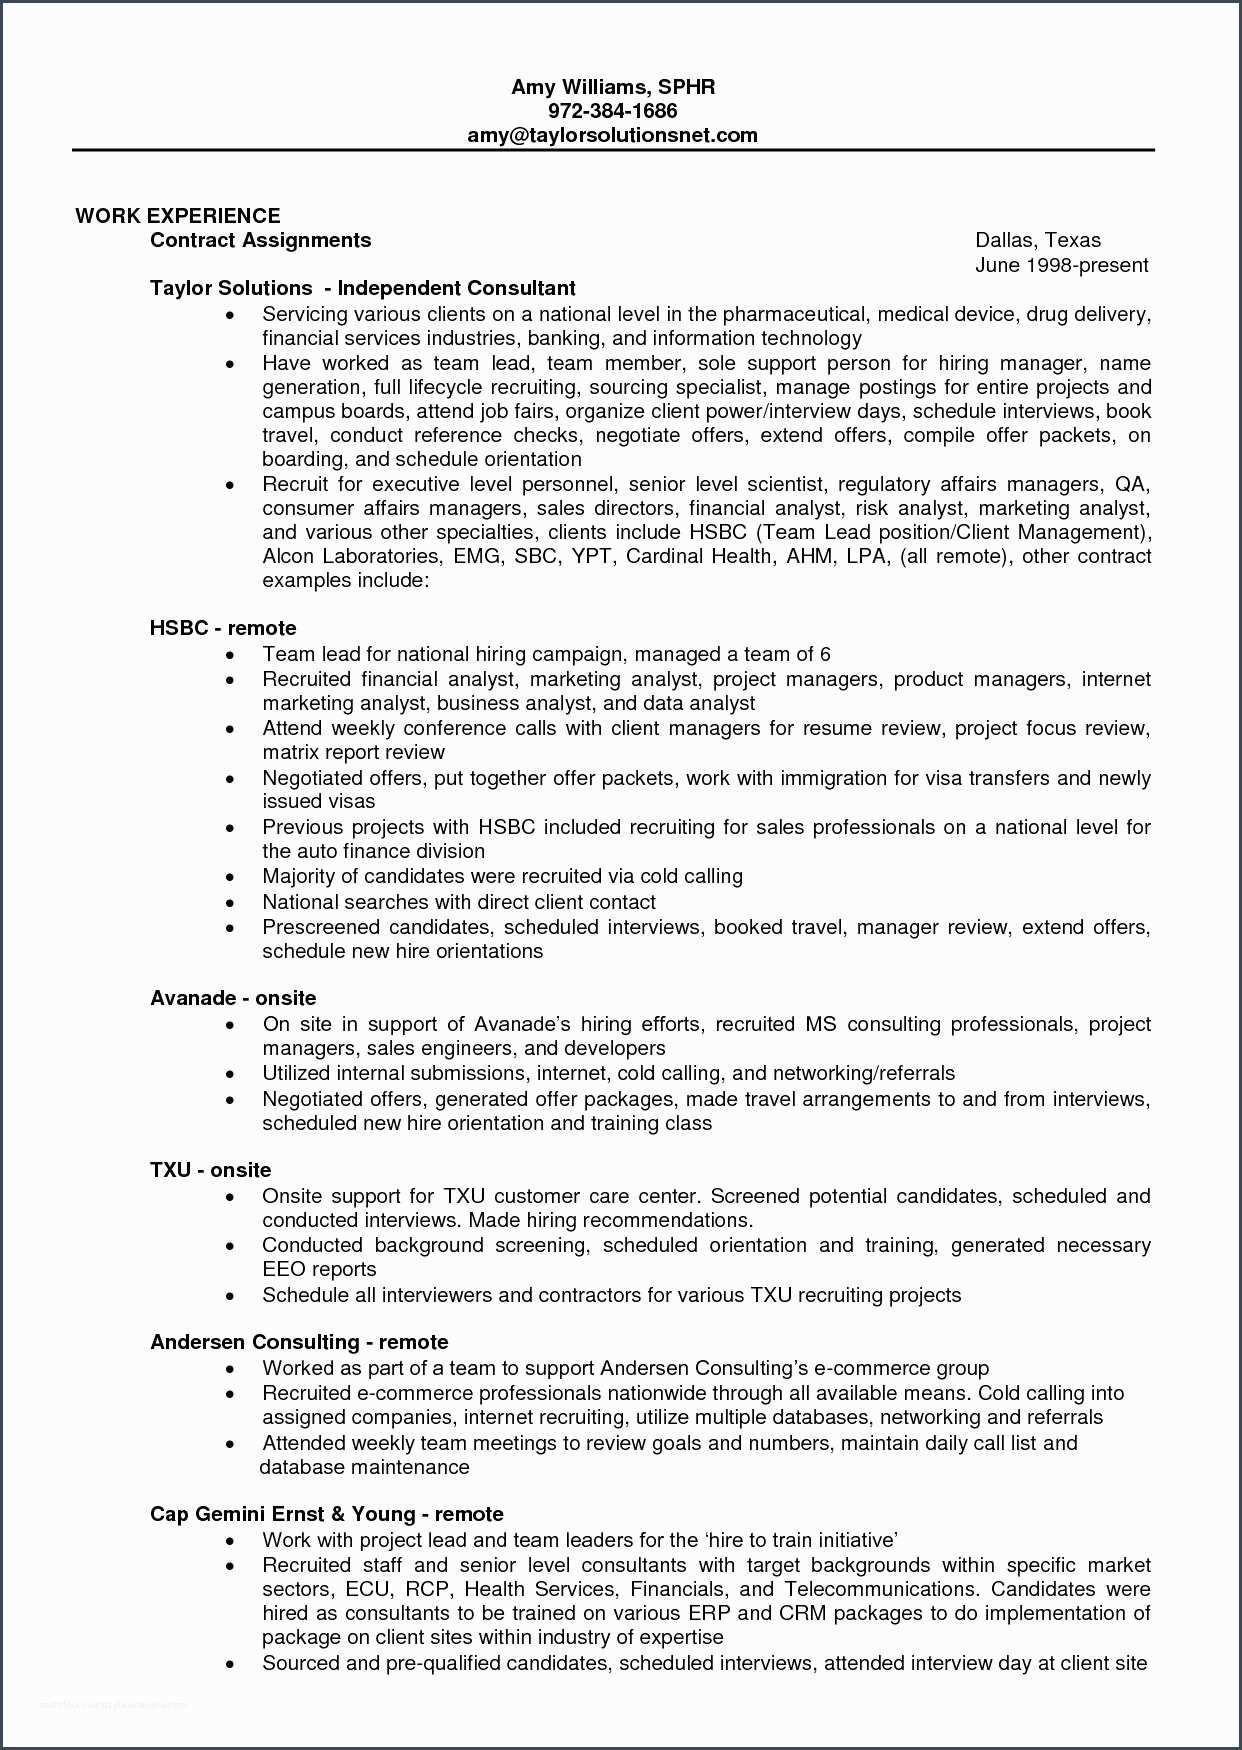 referencebest resume format for finance jobs Resume